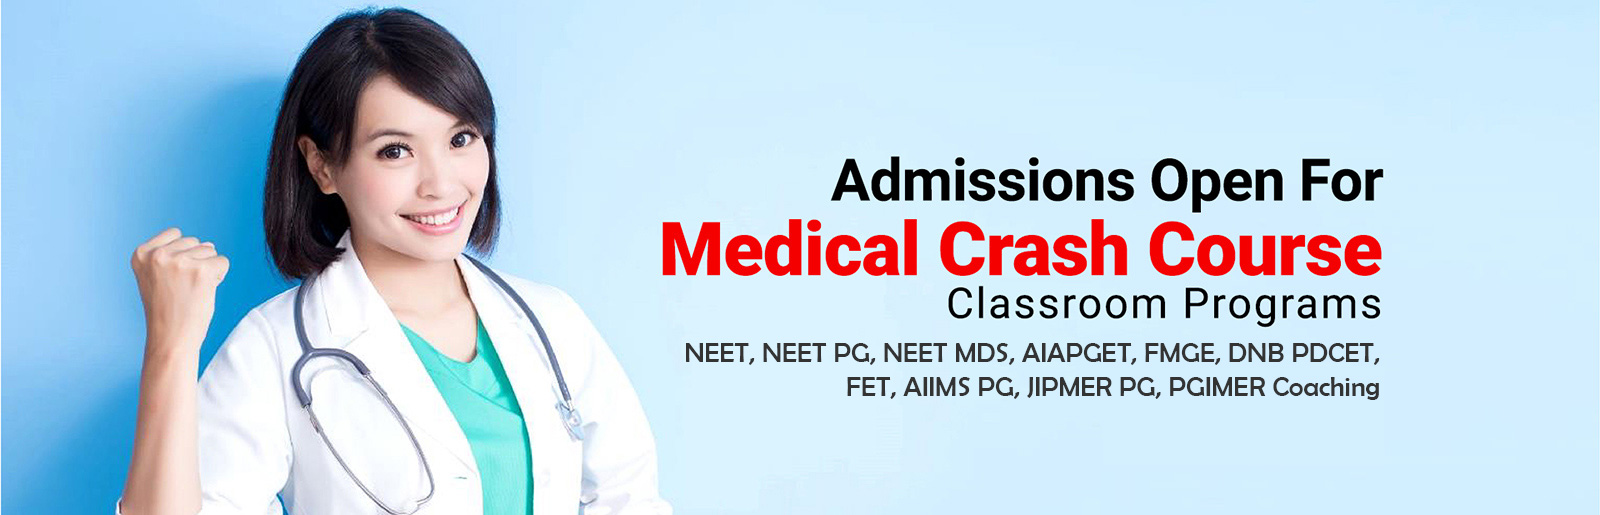 NEET JPG Coaching in Delhi, Best NEET JPG Coaching in Delhi, Top NEET JPG Coaching in Delhi